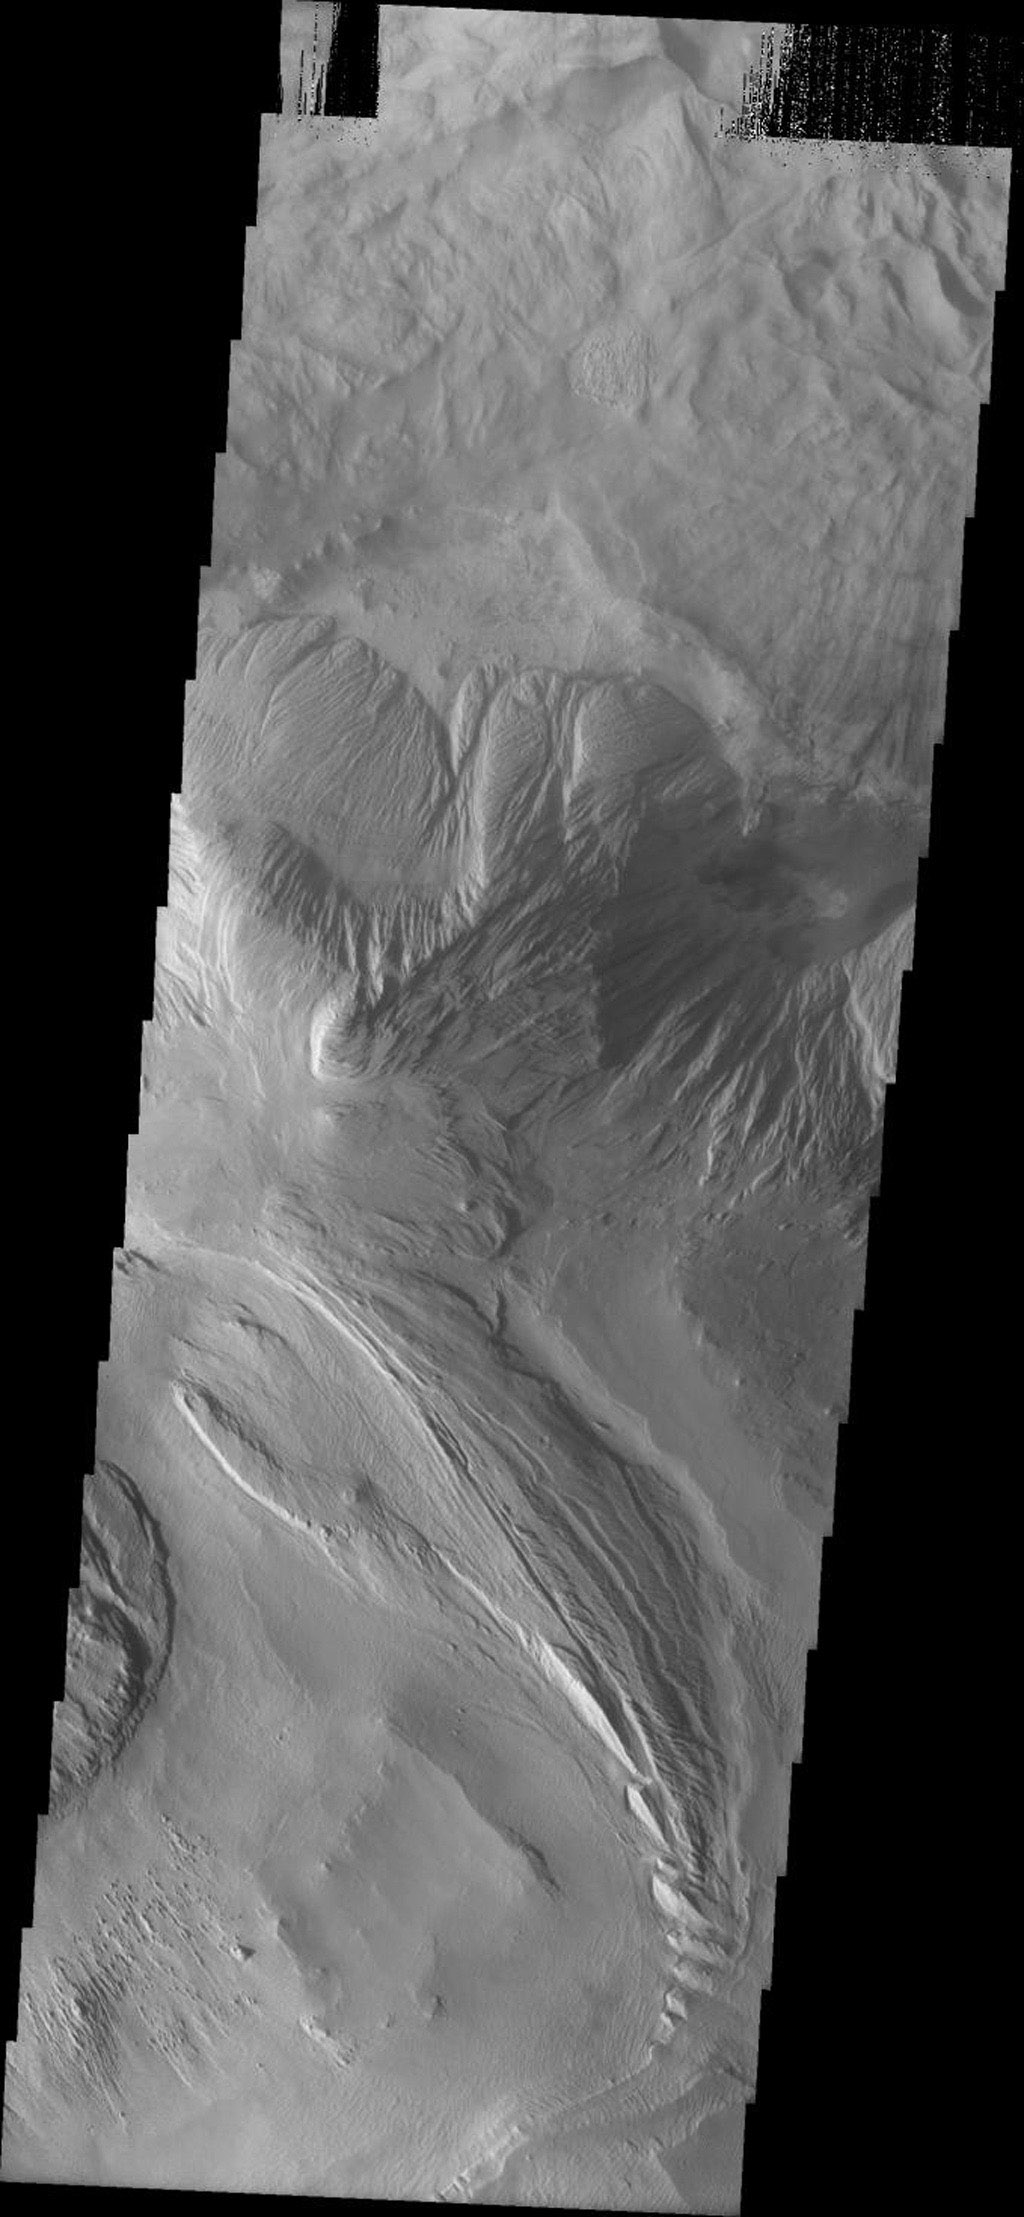 This image from NASA's Mars Odyssey spacecraft shows a portion of the floor of Ophir Chasma on Mars. At top is a landslide deposit. In the center is a wind and perhaps water eroded highland. At bottom wind appears to be the main agent of erosion.